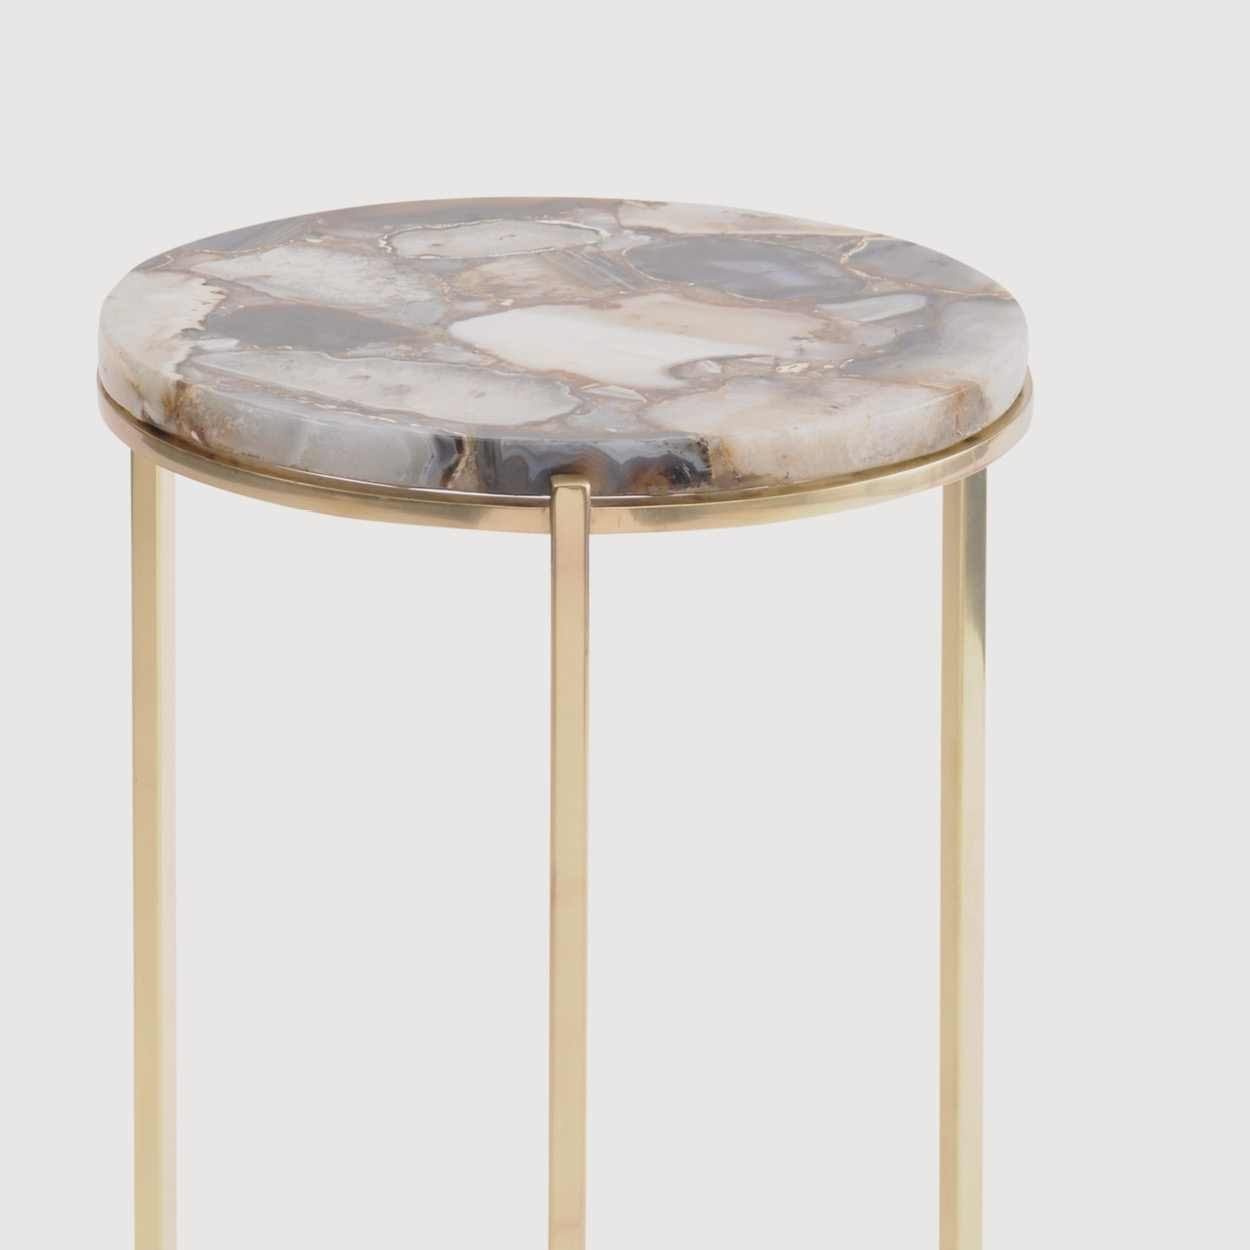 Agate Round Side Table – Brass Frame gallery image